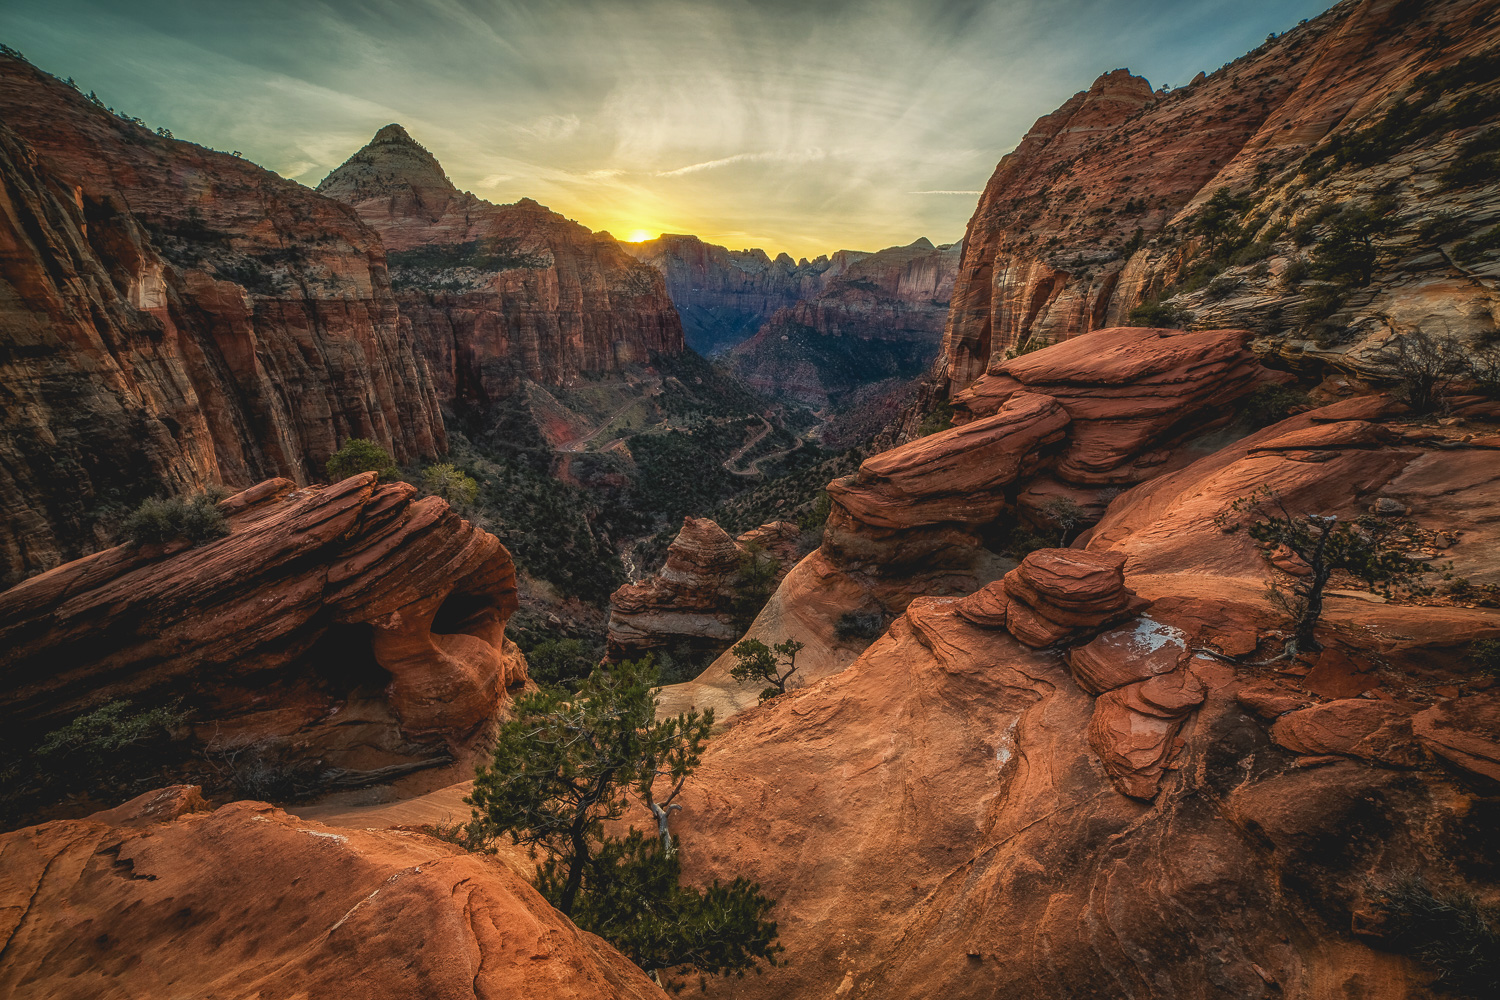 """Canyon Overlook Sunset"" - A wonderful view of the canyon in Zion National Park. Captured on March 12, 2017."